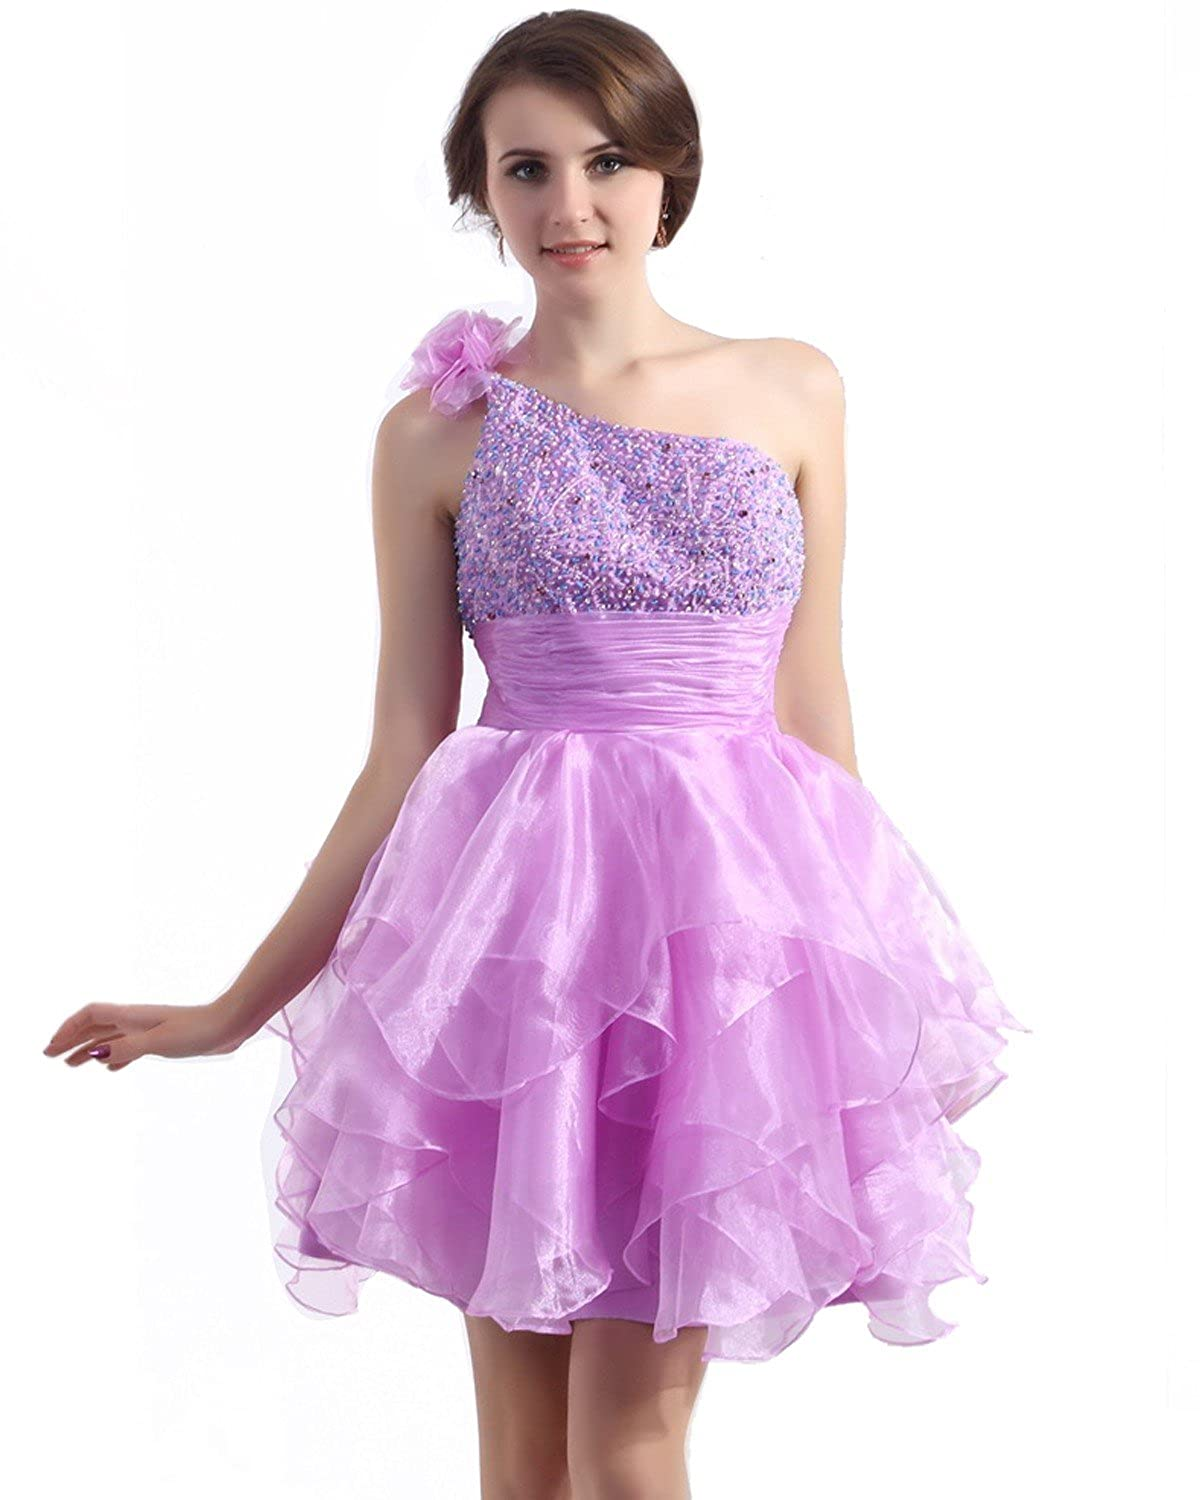 Vampal Lilac One Shoulder Beaded Bodice Homecoming Dresses With Flowers Details